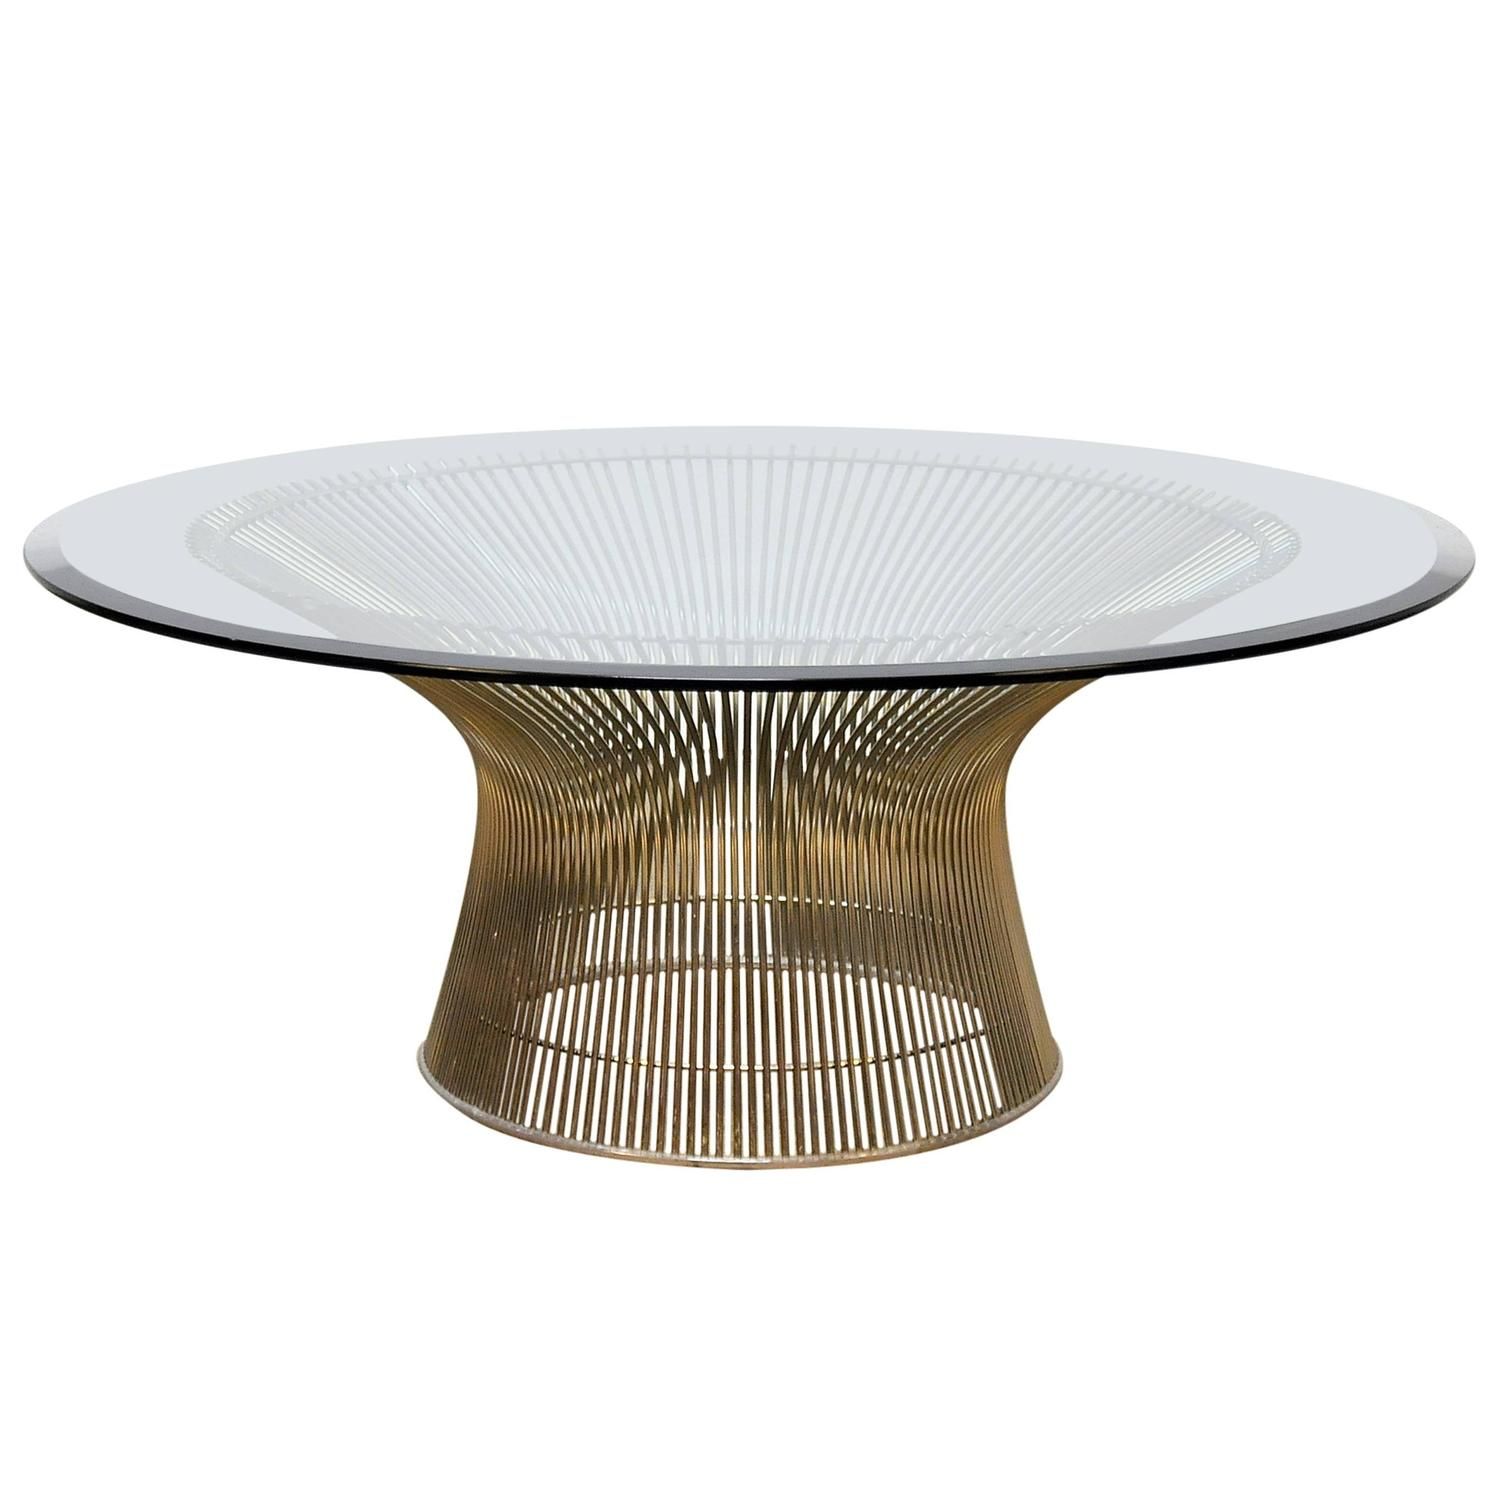 Select Modern Warren Platner For Knoll Coffee Or Cocktail Table